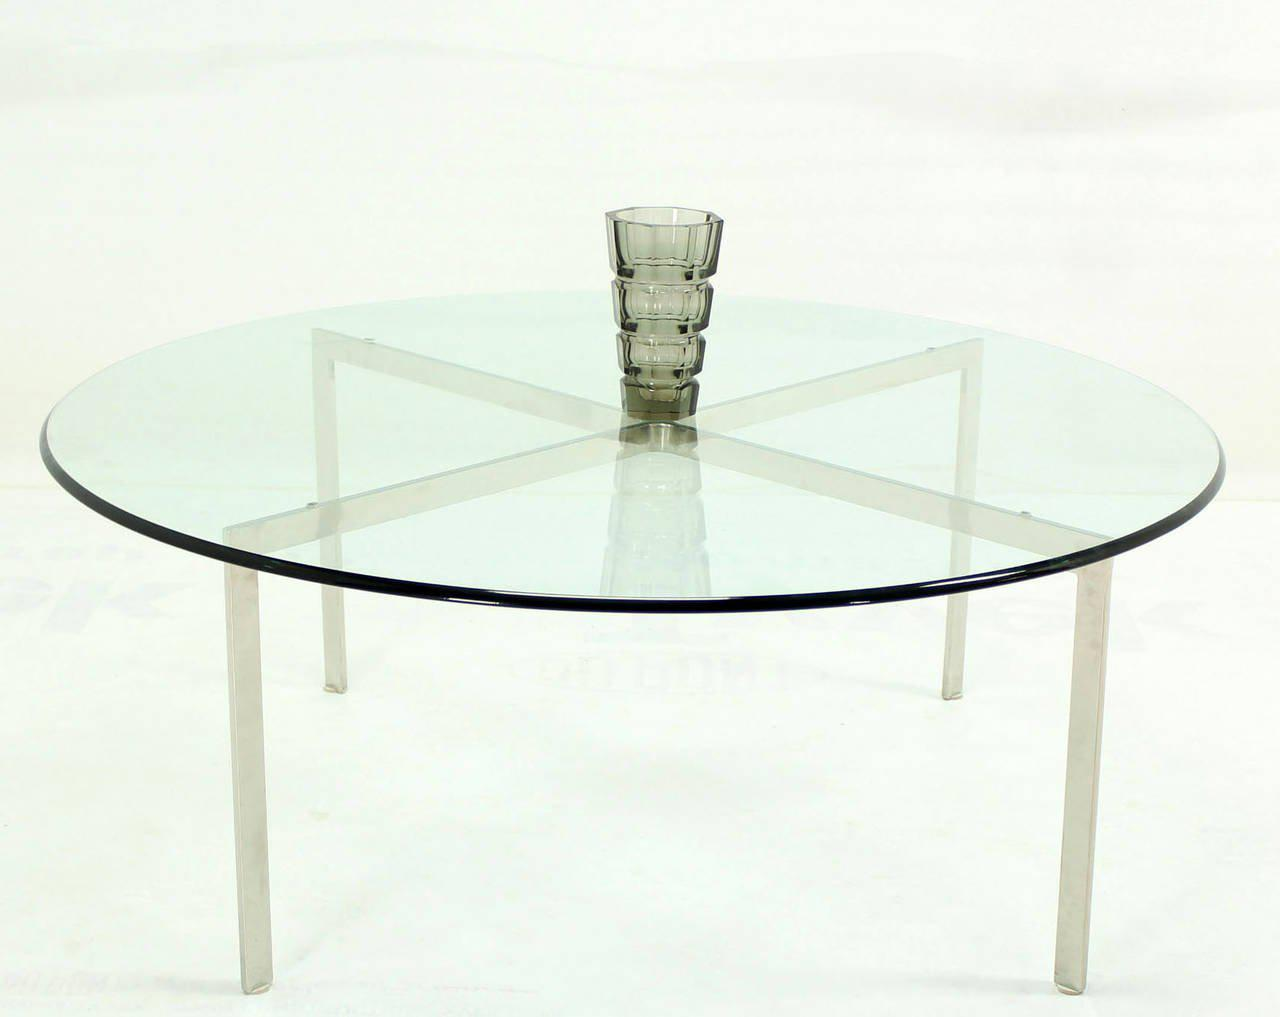 exquisite mid-century modern chrome x base thick round glass top